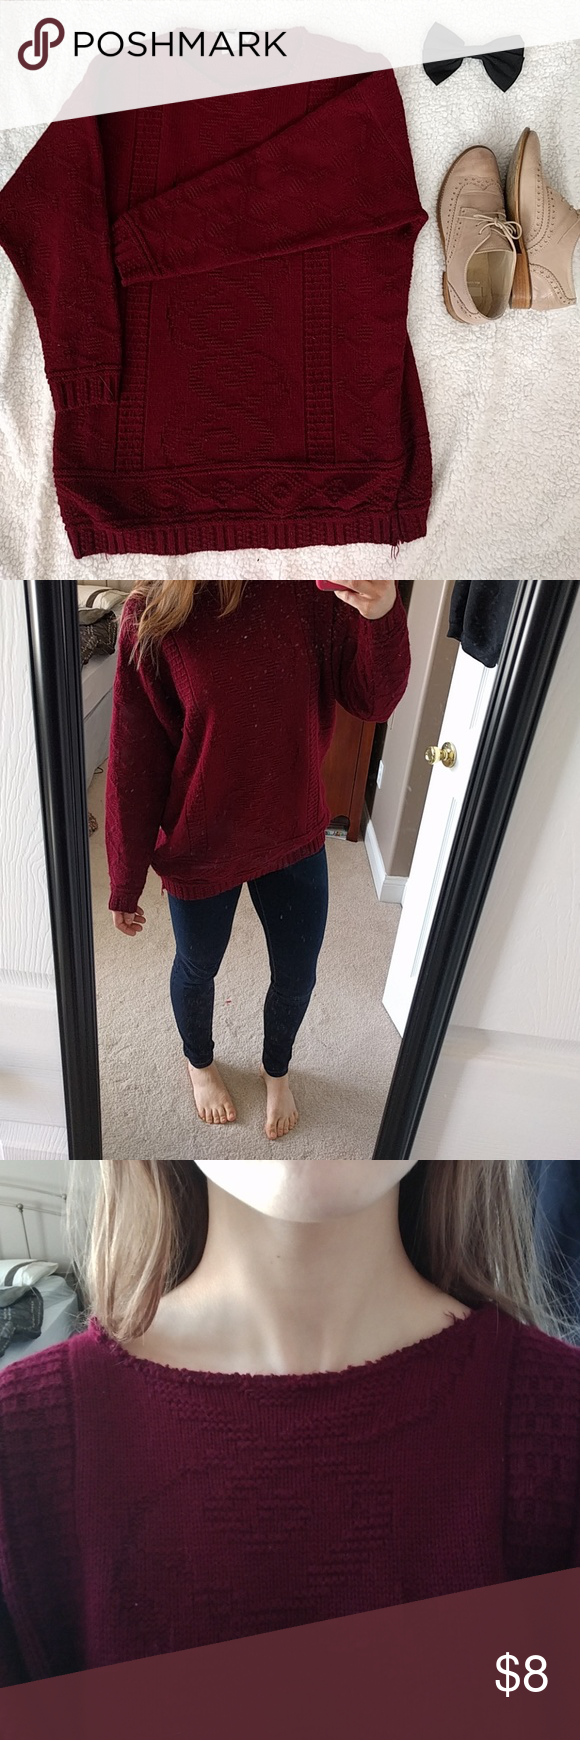 Oversized maroon sweater This cable knit sweater was a hand-me-down, I'll be honest. But it is a perfect cozy vintage-looking sweater for the winter! With a cable knit unique pattern, it is a classic to wear with jeans or leggings when you just want to bundle up. There is some wear to this (reflected in price) such as slightly frayed collar and snags on the bottom hem (shown, and one identical to it on other side) but if you're going for the grandpa cozy look, it's for you! Sweaters Crew…